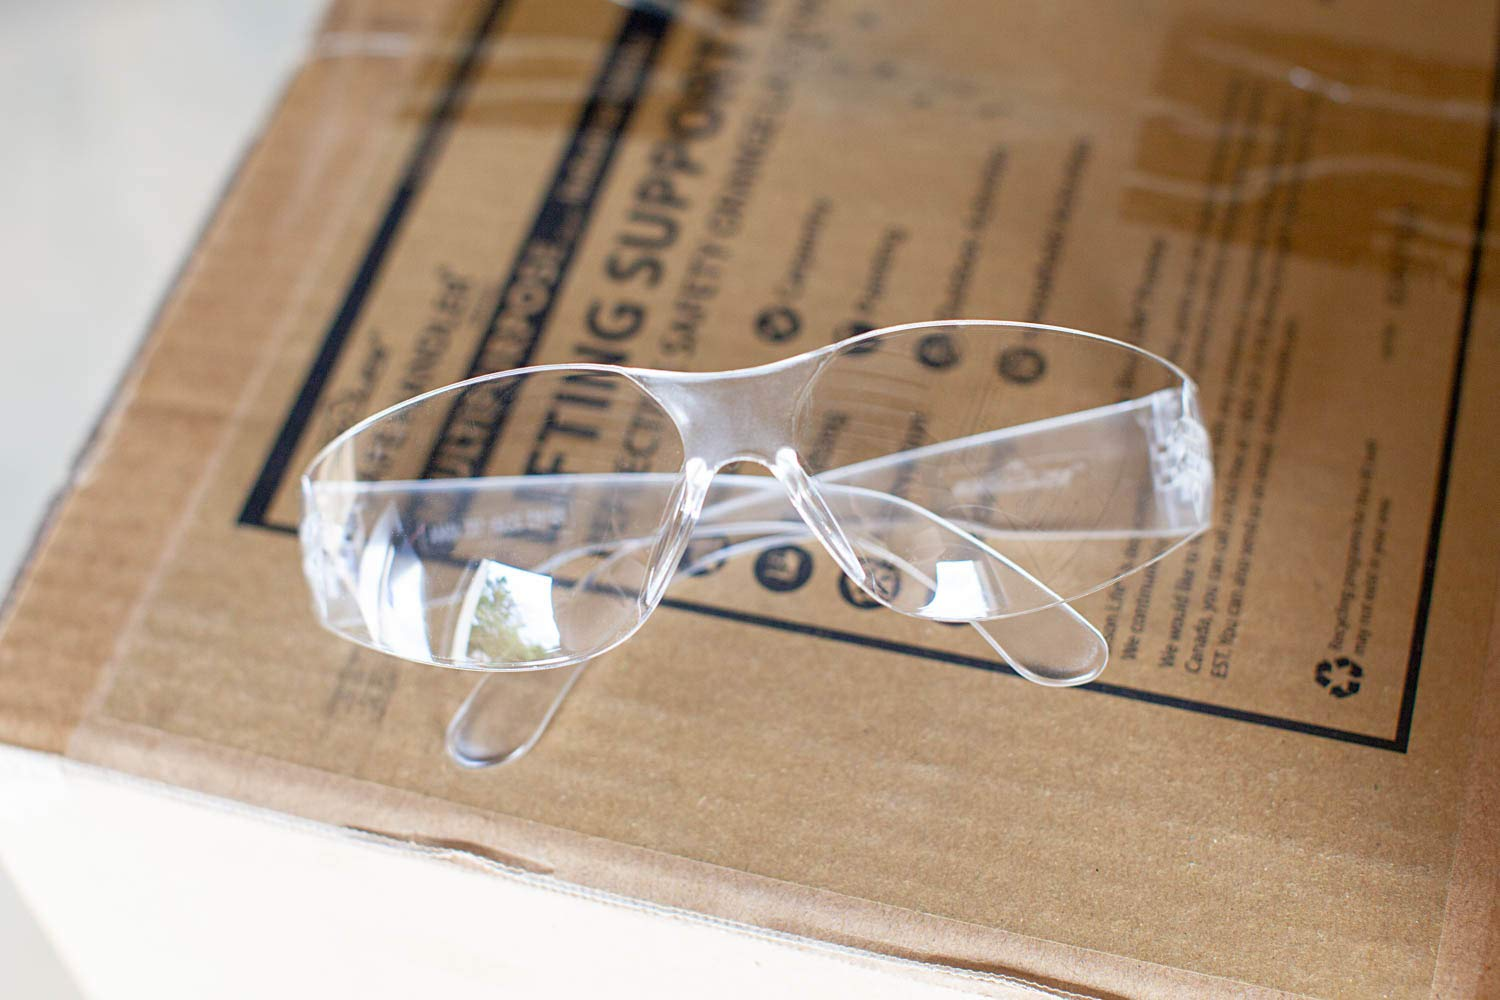 BISON LIFE Safety Glasses | One Size, Clear Protective Polycarbonate Lens, Clear Temple, 12 per Box (Case of 12 boxes, 144 pairs total) by BISON LIFE (Image #7)